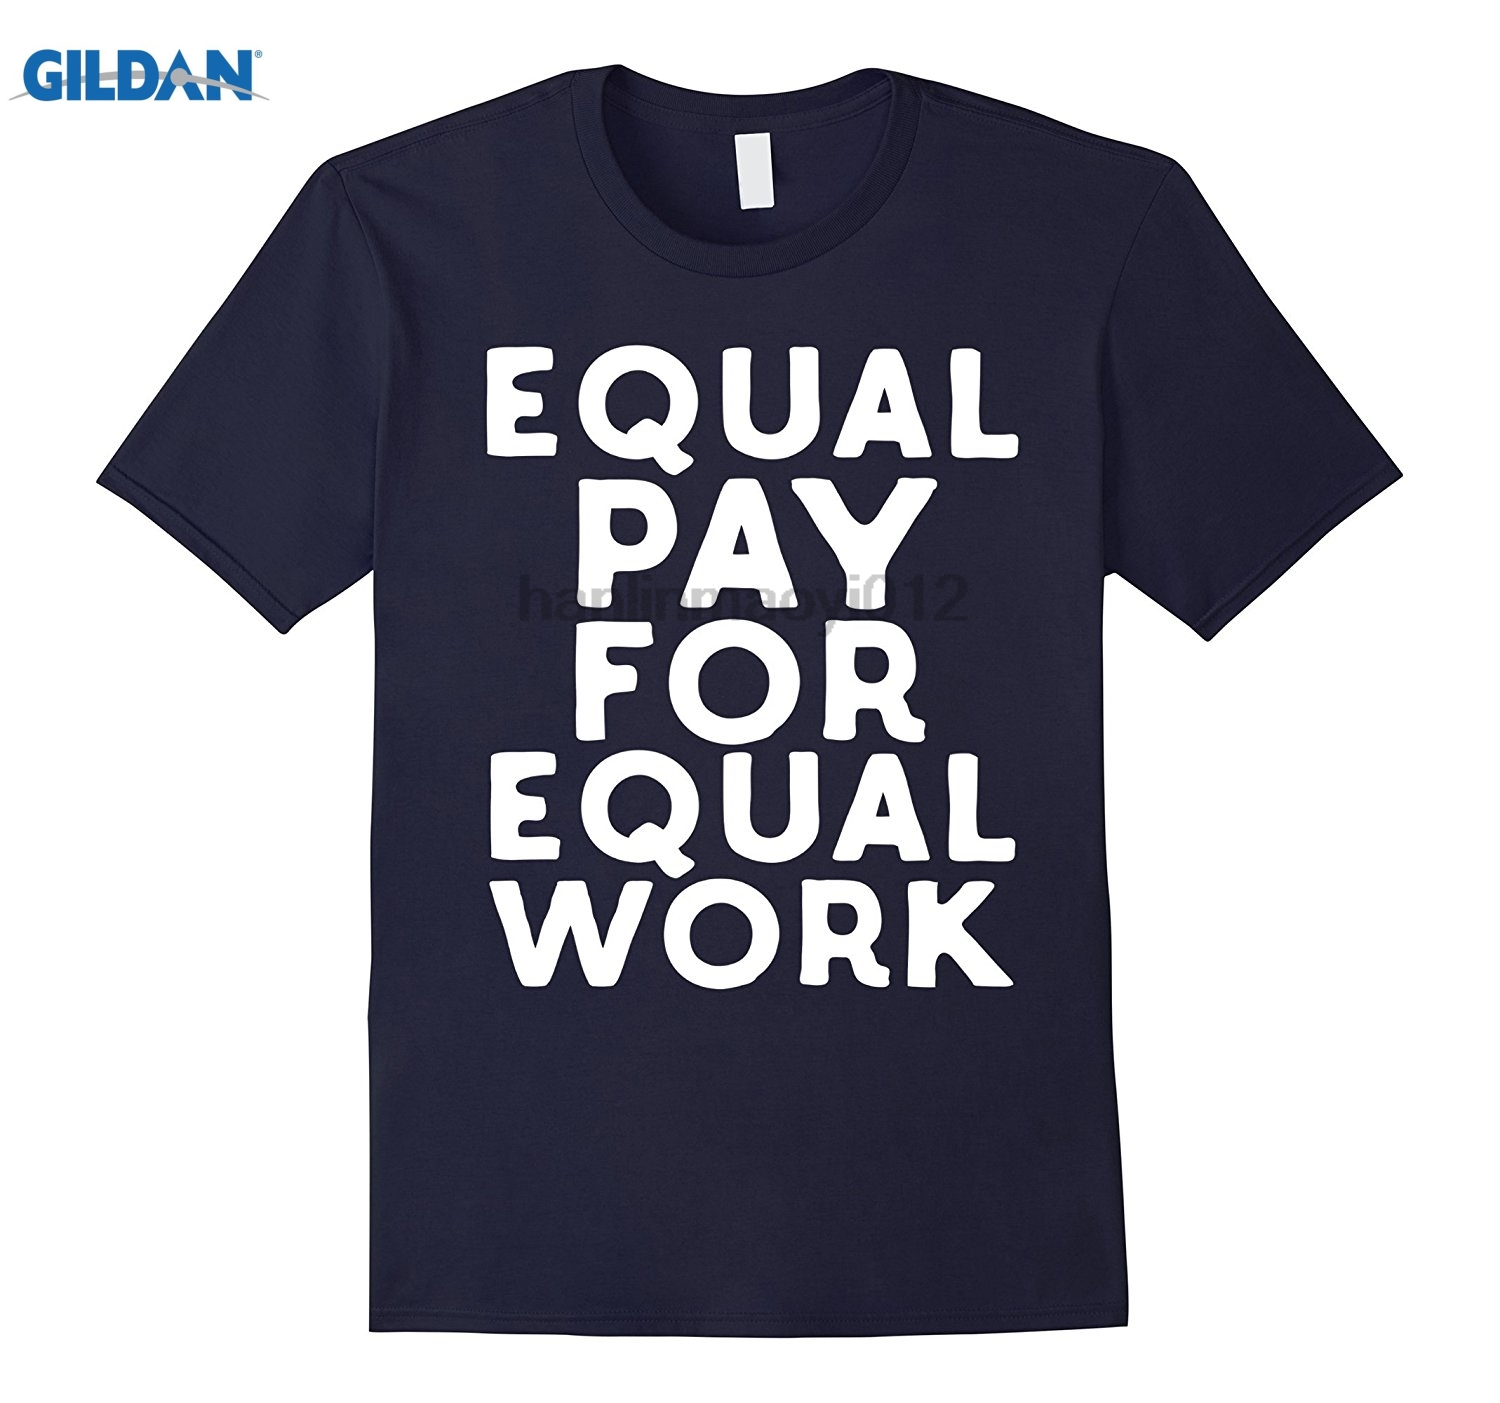 GILDAN Equal Pay For Equal Work Social Justice Protest T-shirt ...